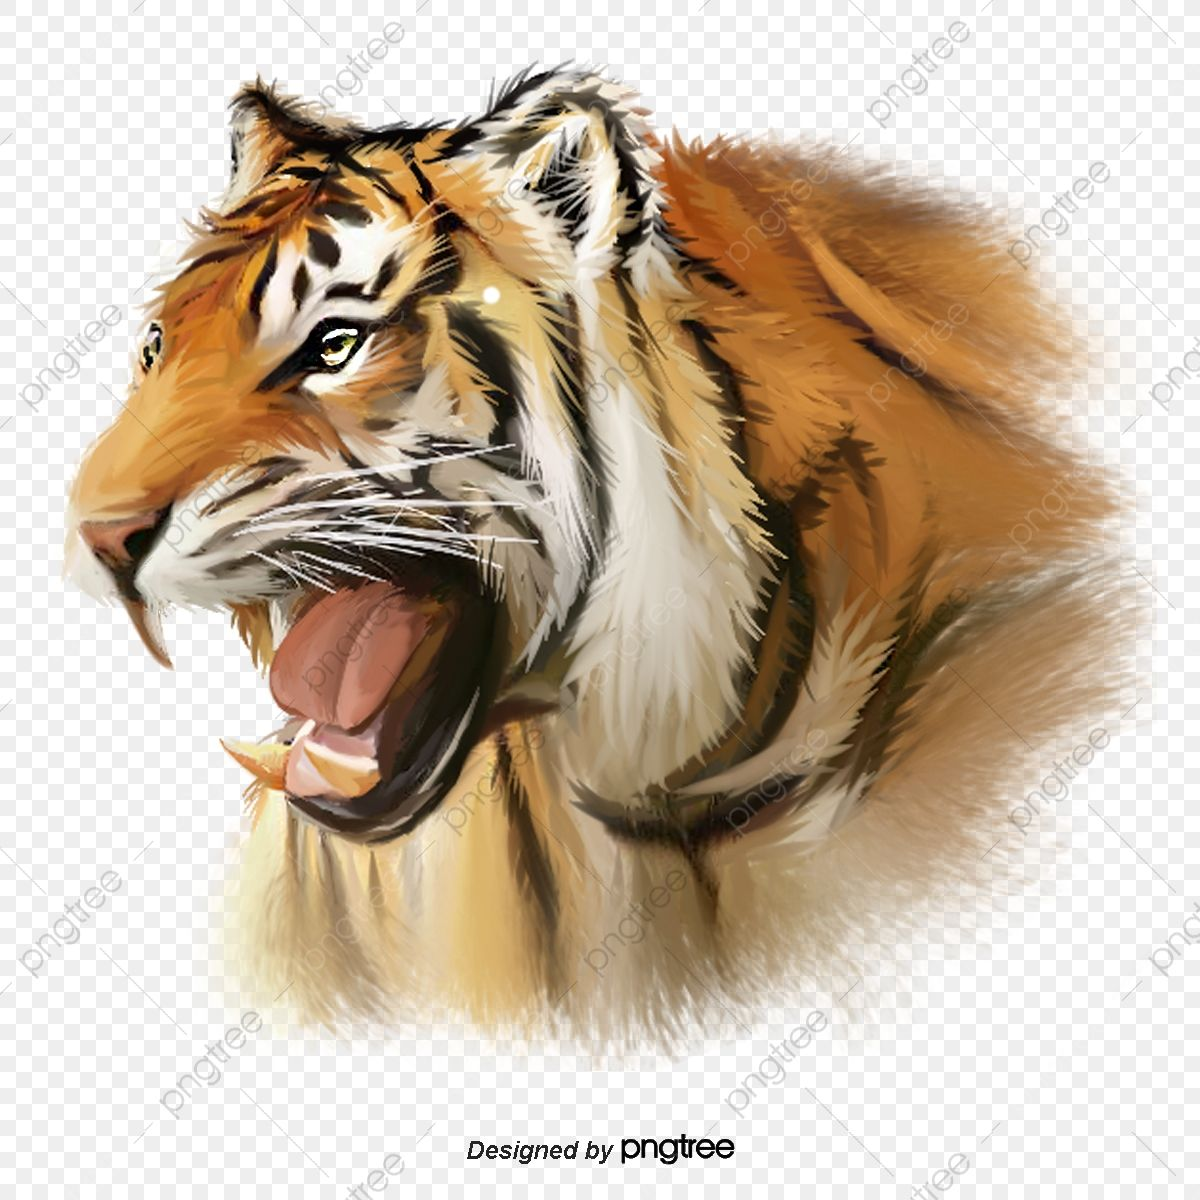 Hand Painted Head Element Of Ferocious Tiger Fierce And Fierce Ferocious Head Portrait Png Transparent Clipart Image And Psd File For Free Download Silhouette Painting Fur Background Best Background Images